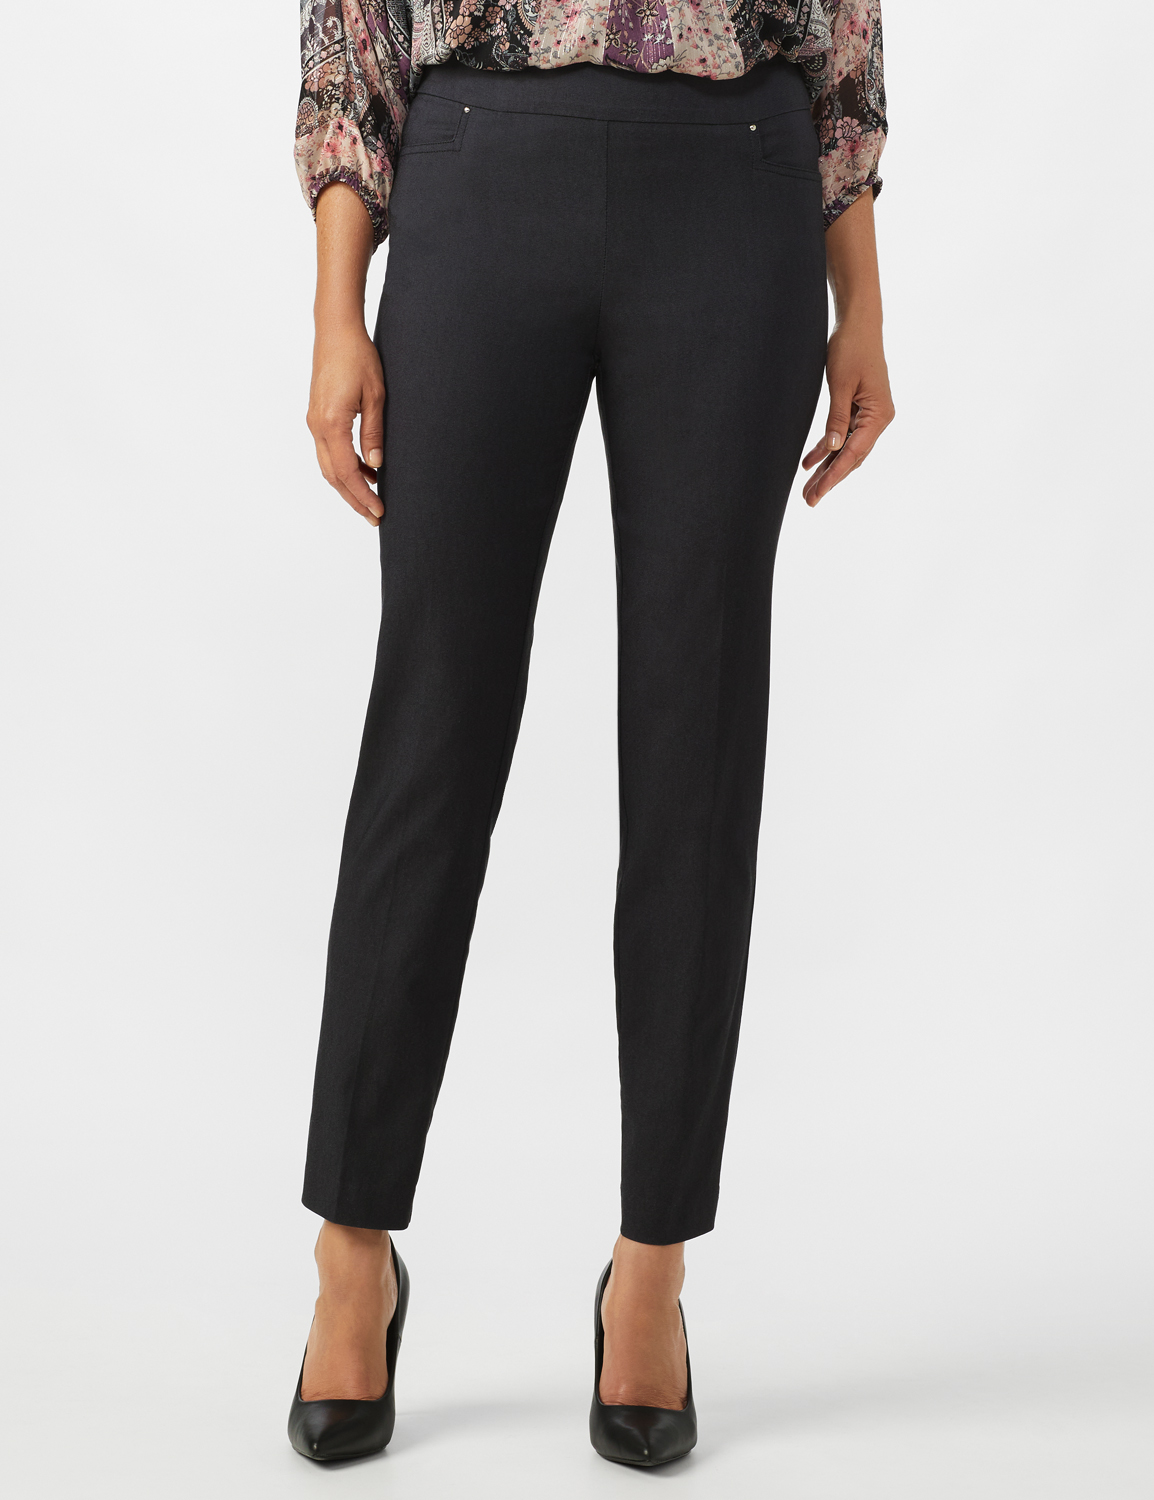 Superstretch Pull On Pants with Rivet Trim L Pockets - Black denim - Front